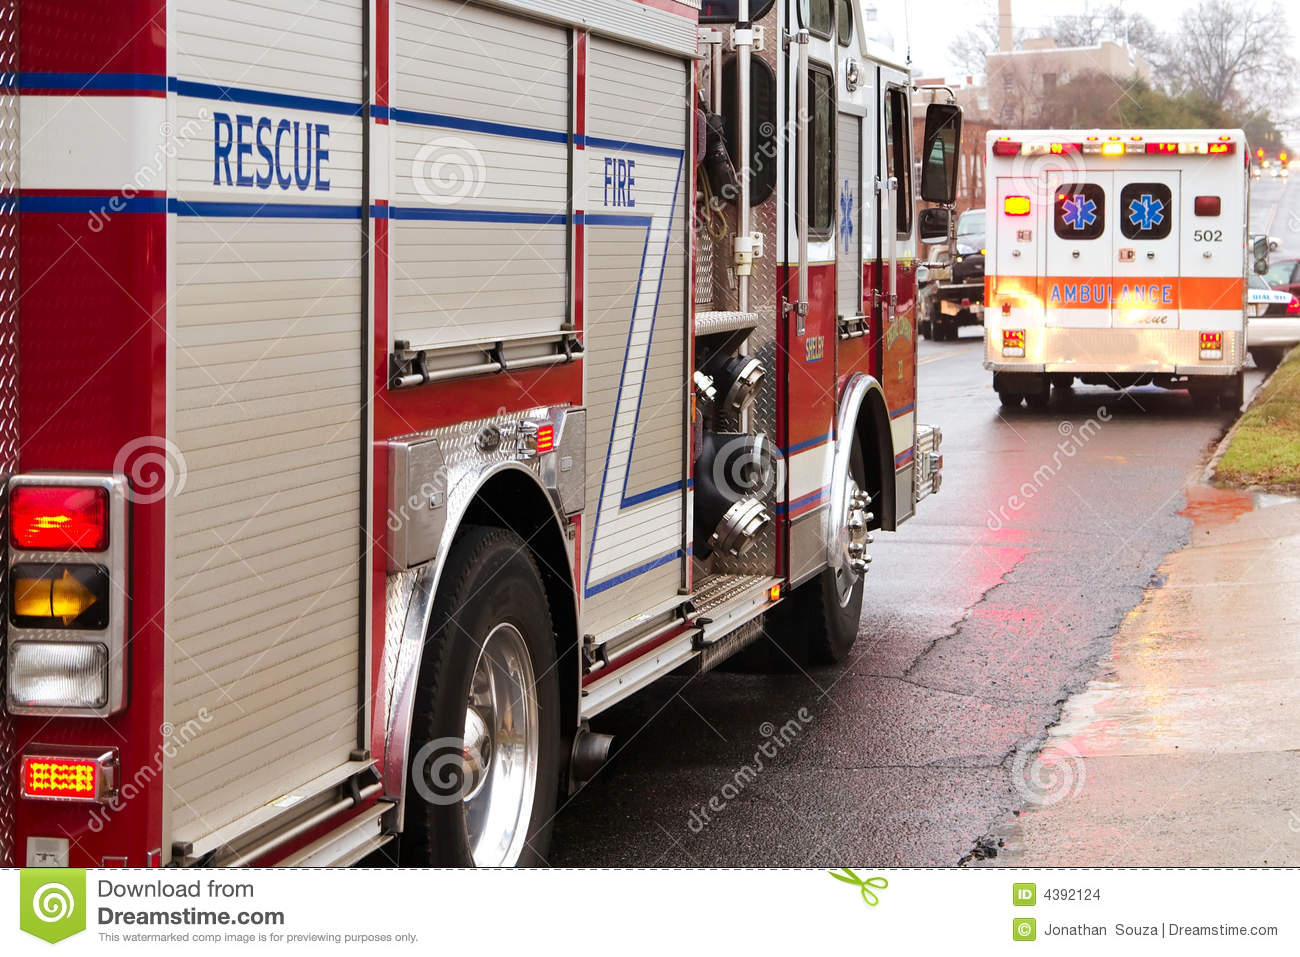 Firemen on their way to the scene